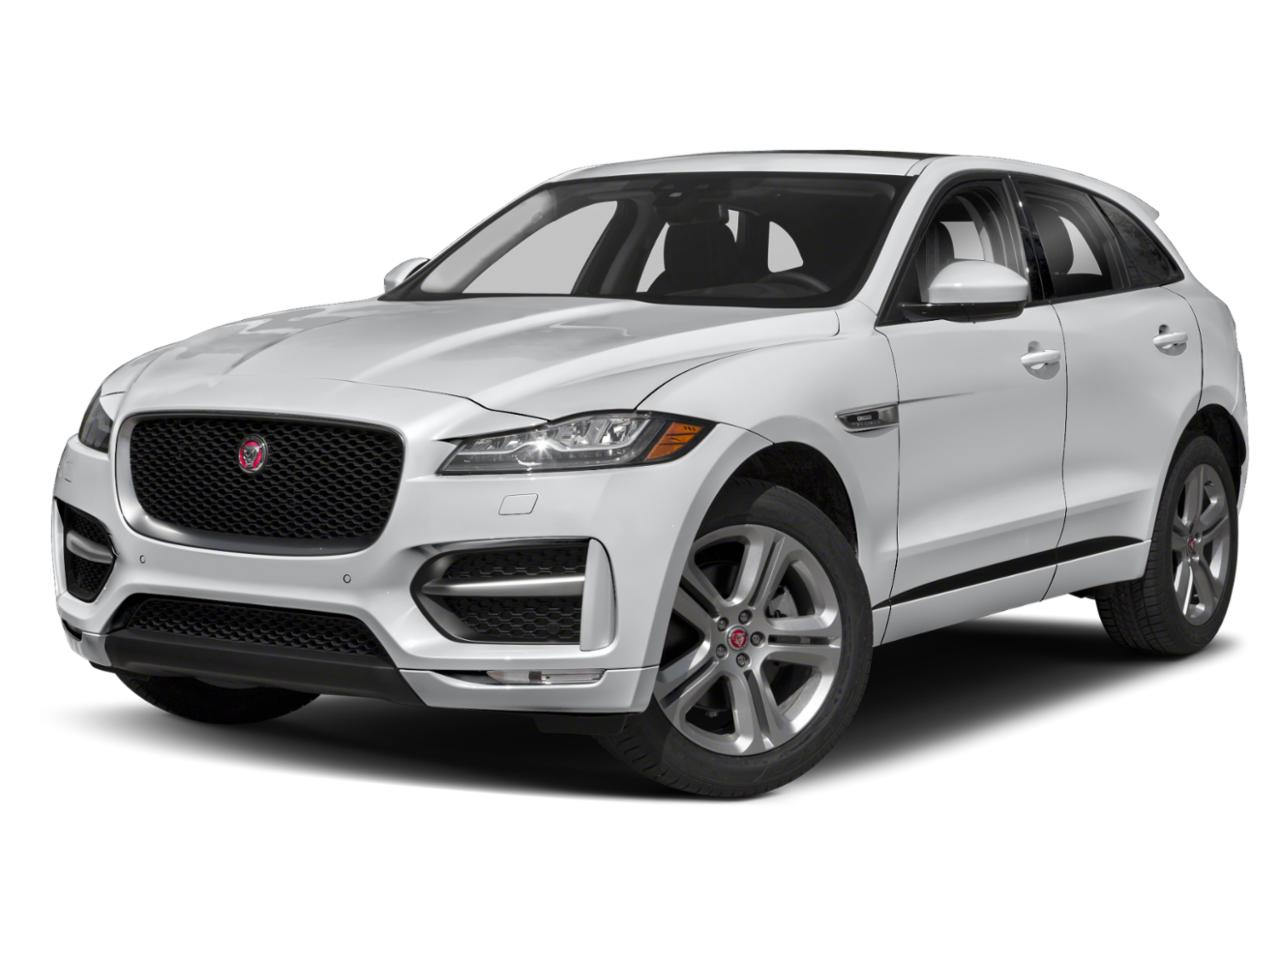 Used 2018 Jaguar F-PACE R-Sport with VIN SADCL2EV3JA268528 for sale in Two Harbors, Minnesota